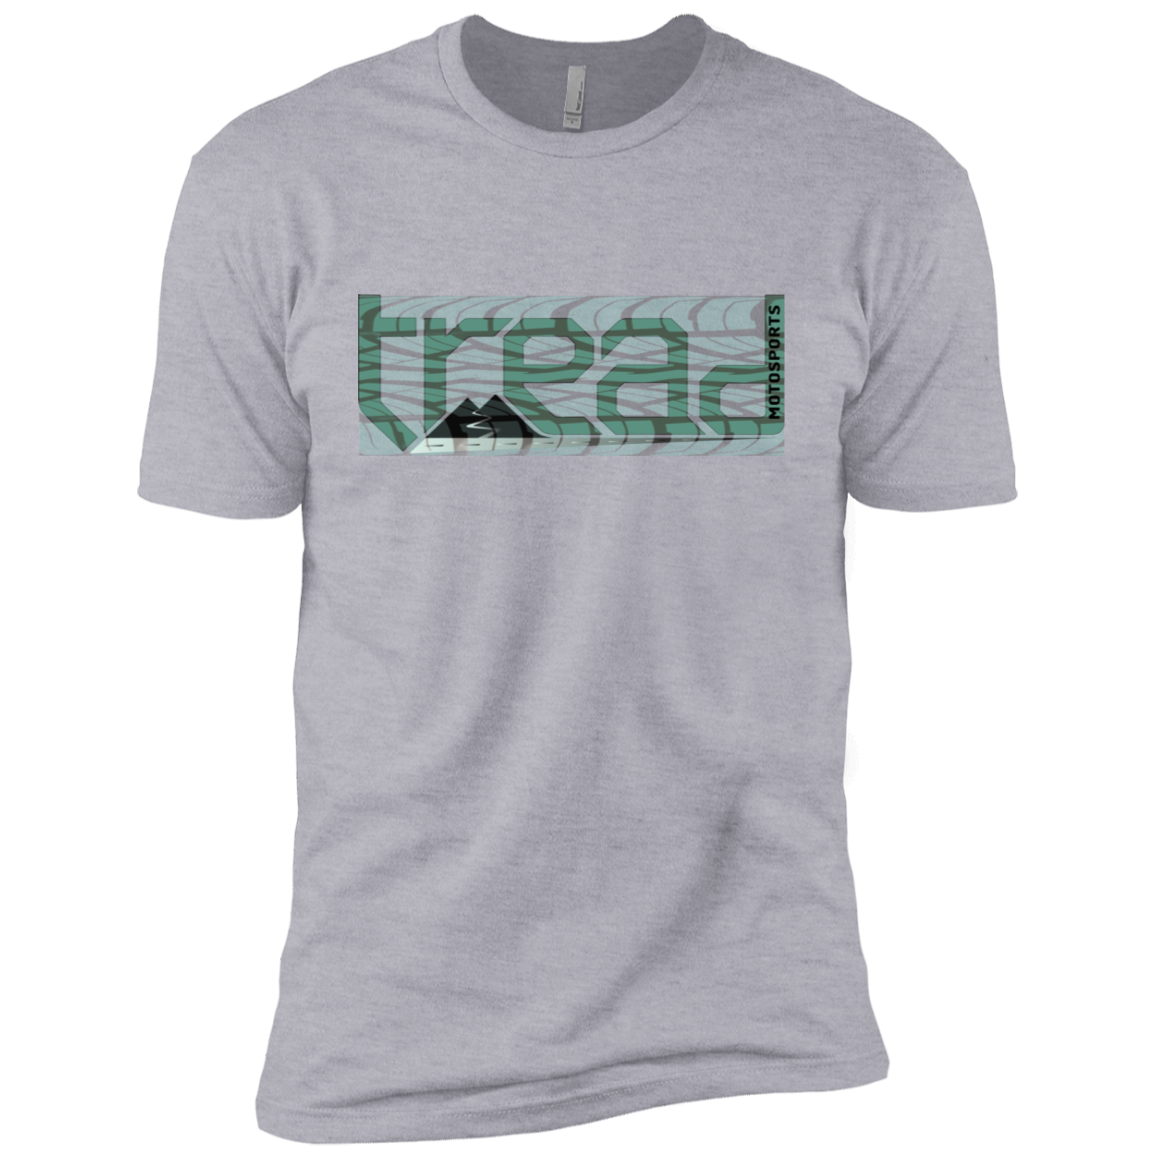 TREAD DESIGN | Tracks Premium Short Sleeve T-Shirt